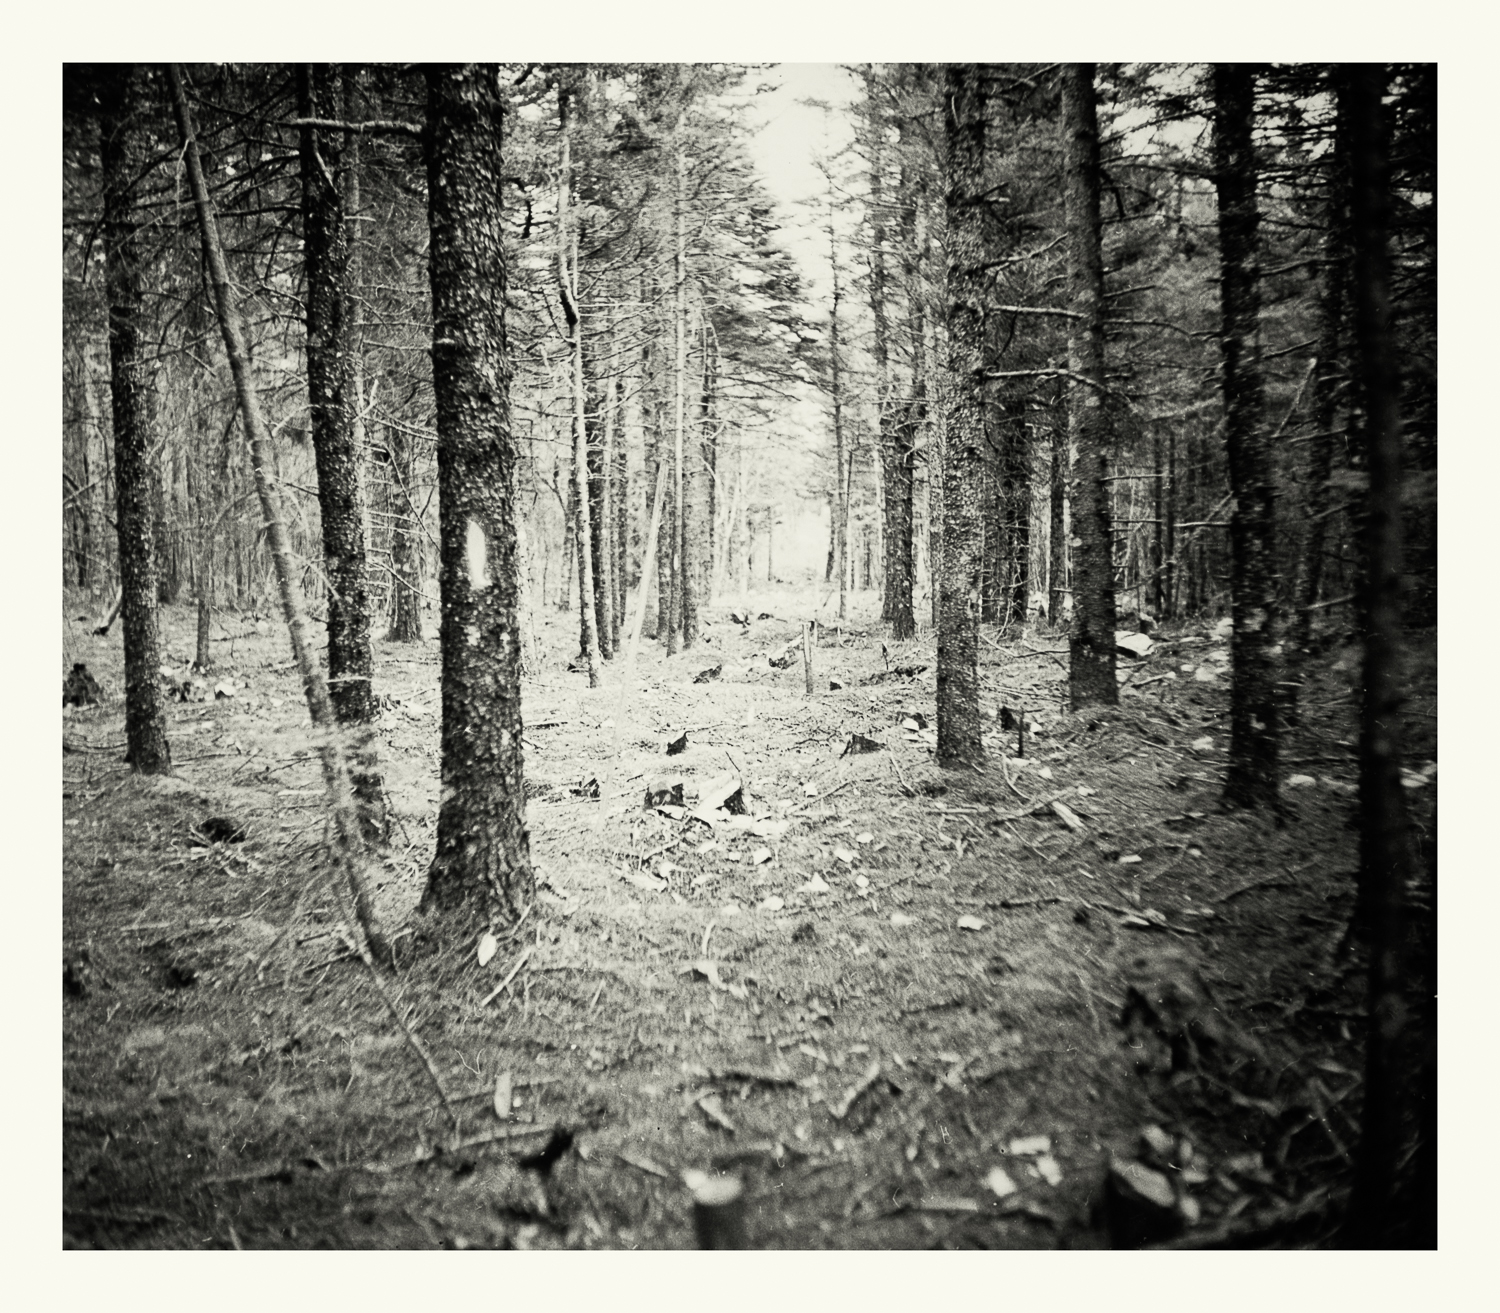 """Photograph No. PC 072. """"Photograph depicting forest cleared to make way for electrical power lines."""" c. 1944. Records of Naval Districts and Shore Establishments, RG 181, NARA Boston."""